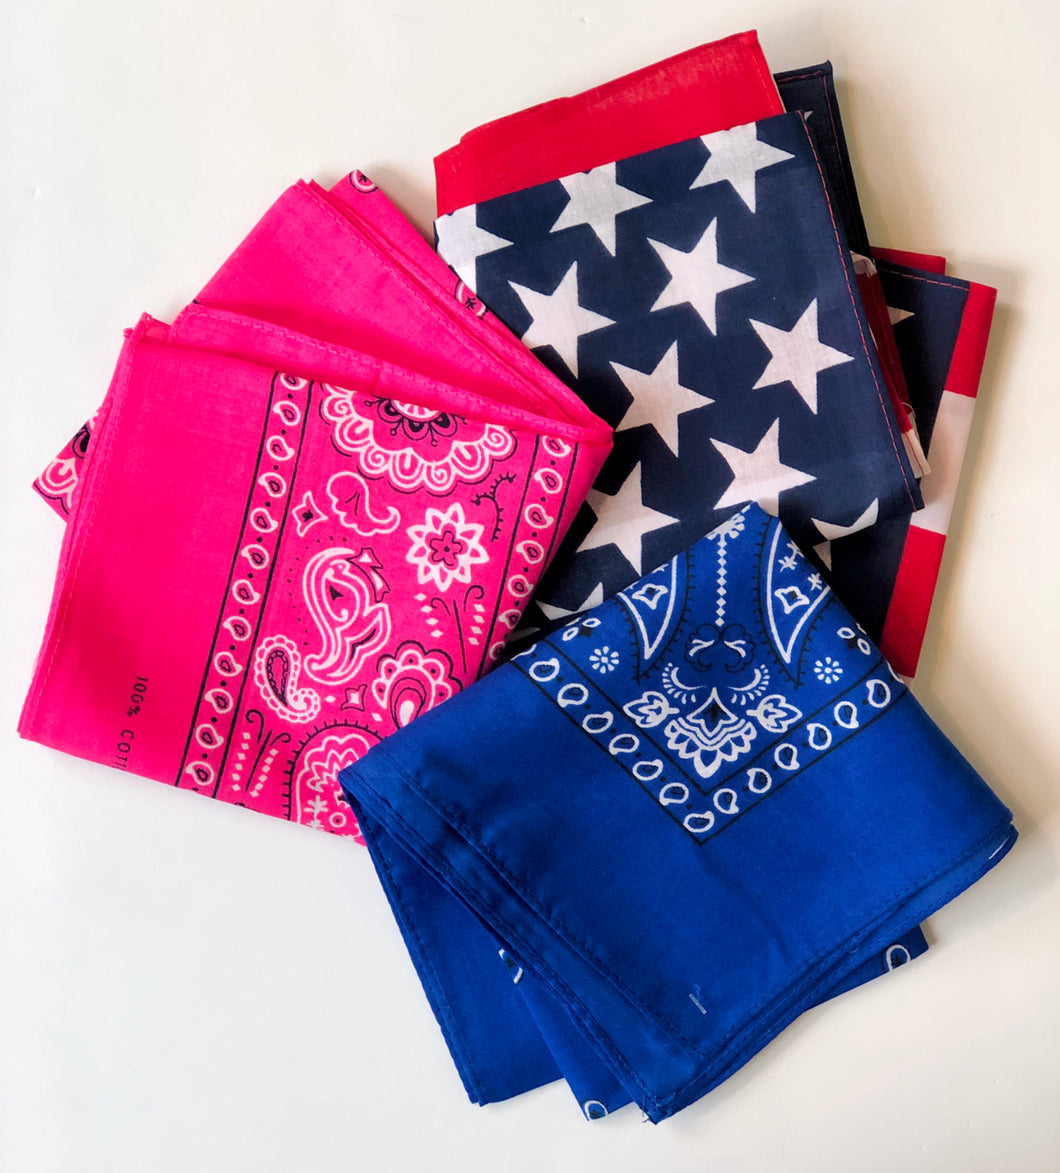 Double Sided Printed Bandanas